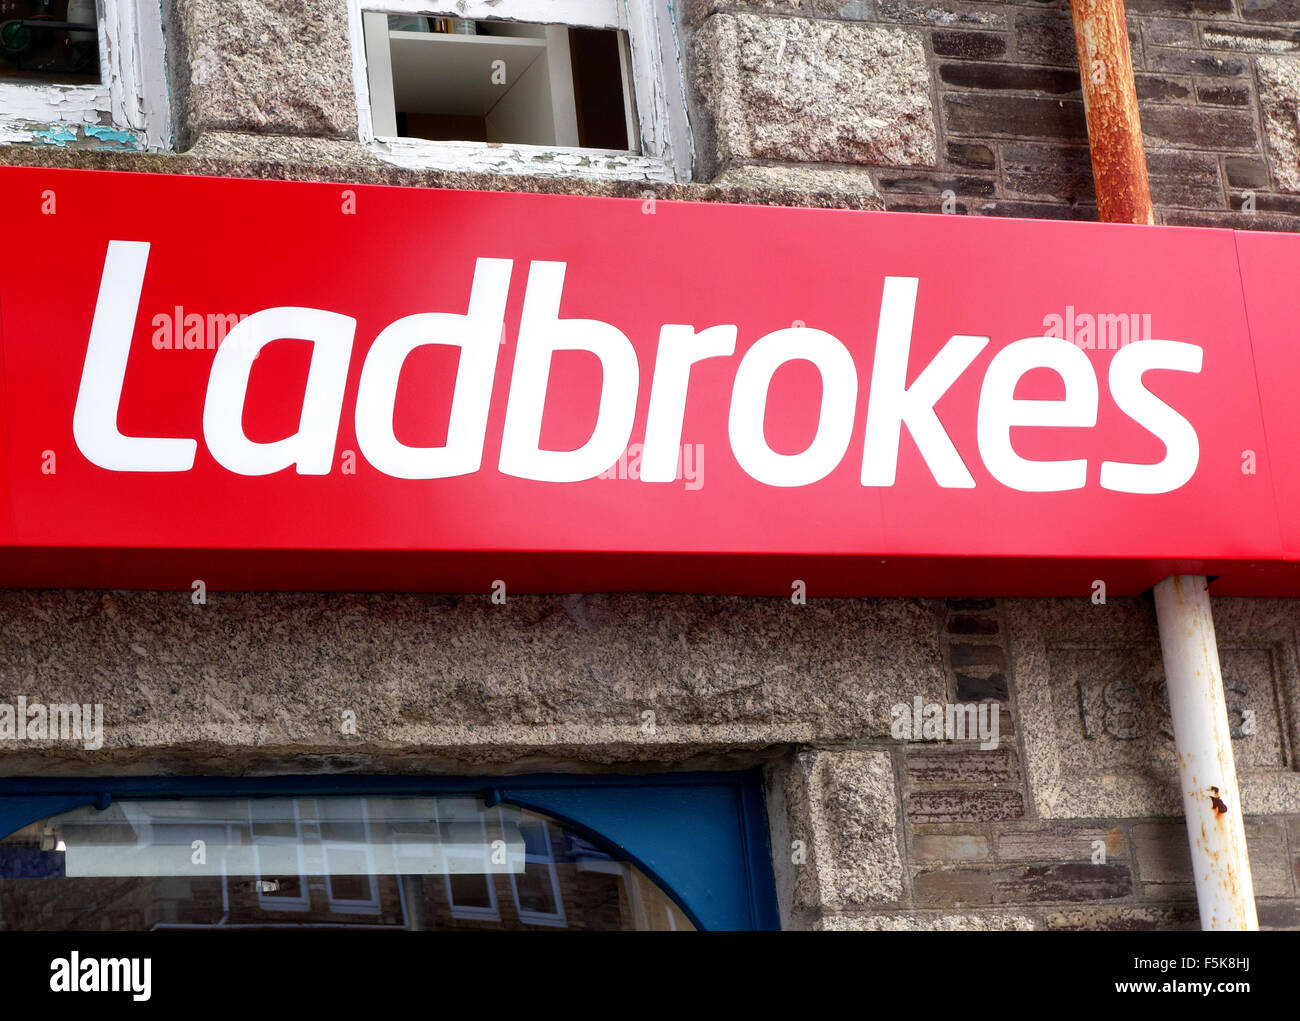 Ladbrokes betting shop - Stock Image